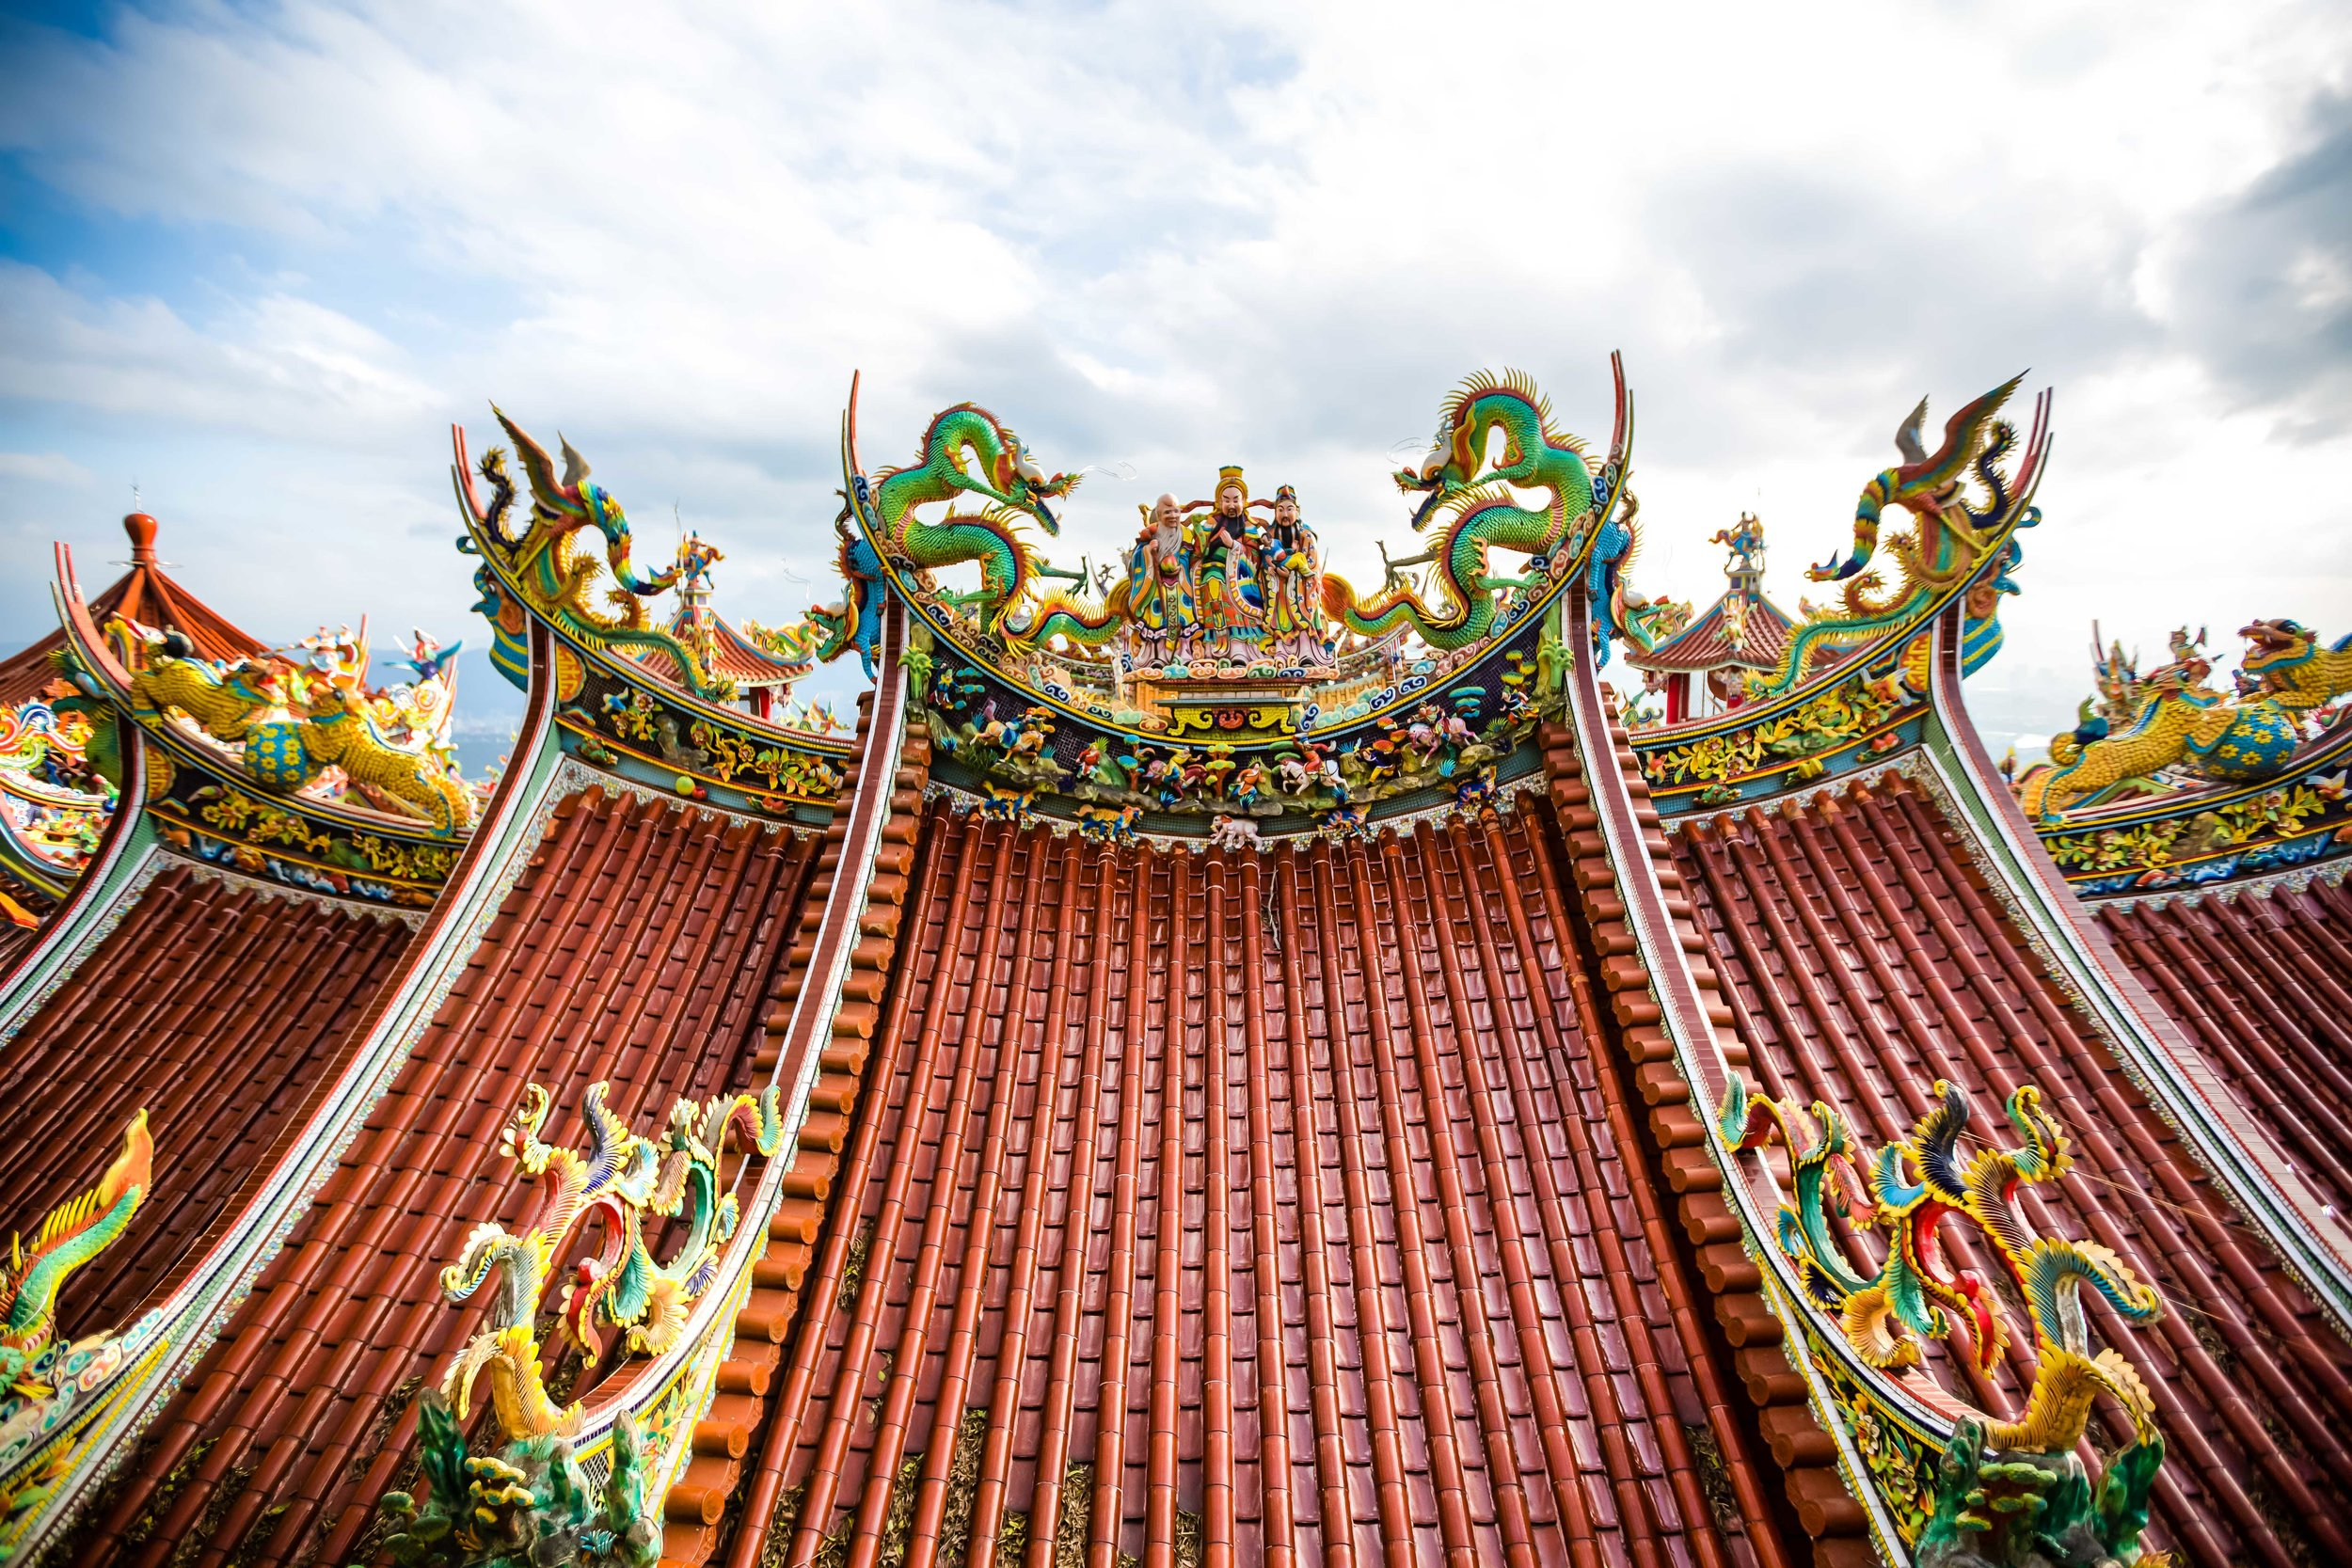 The temple roof from the mountain above.